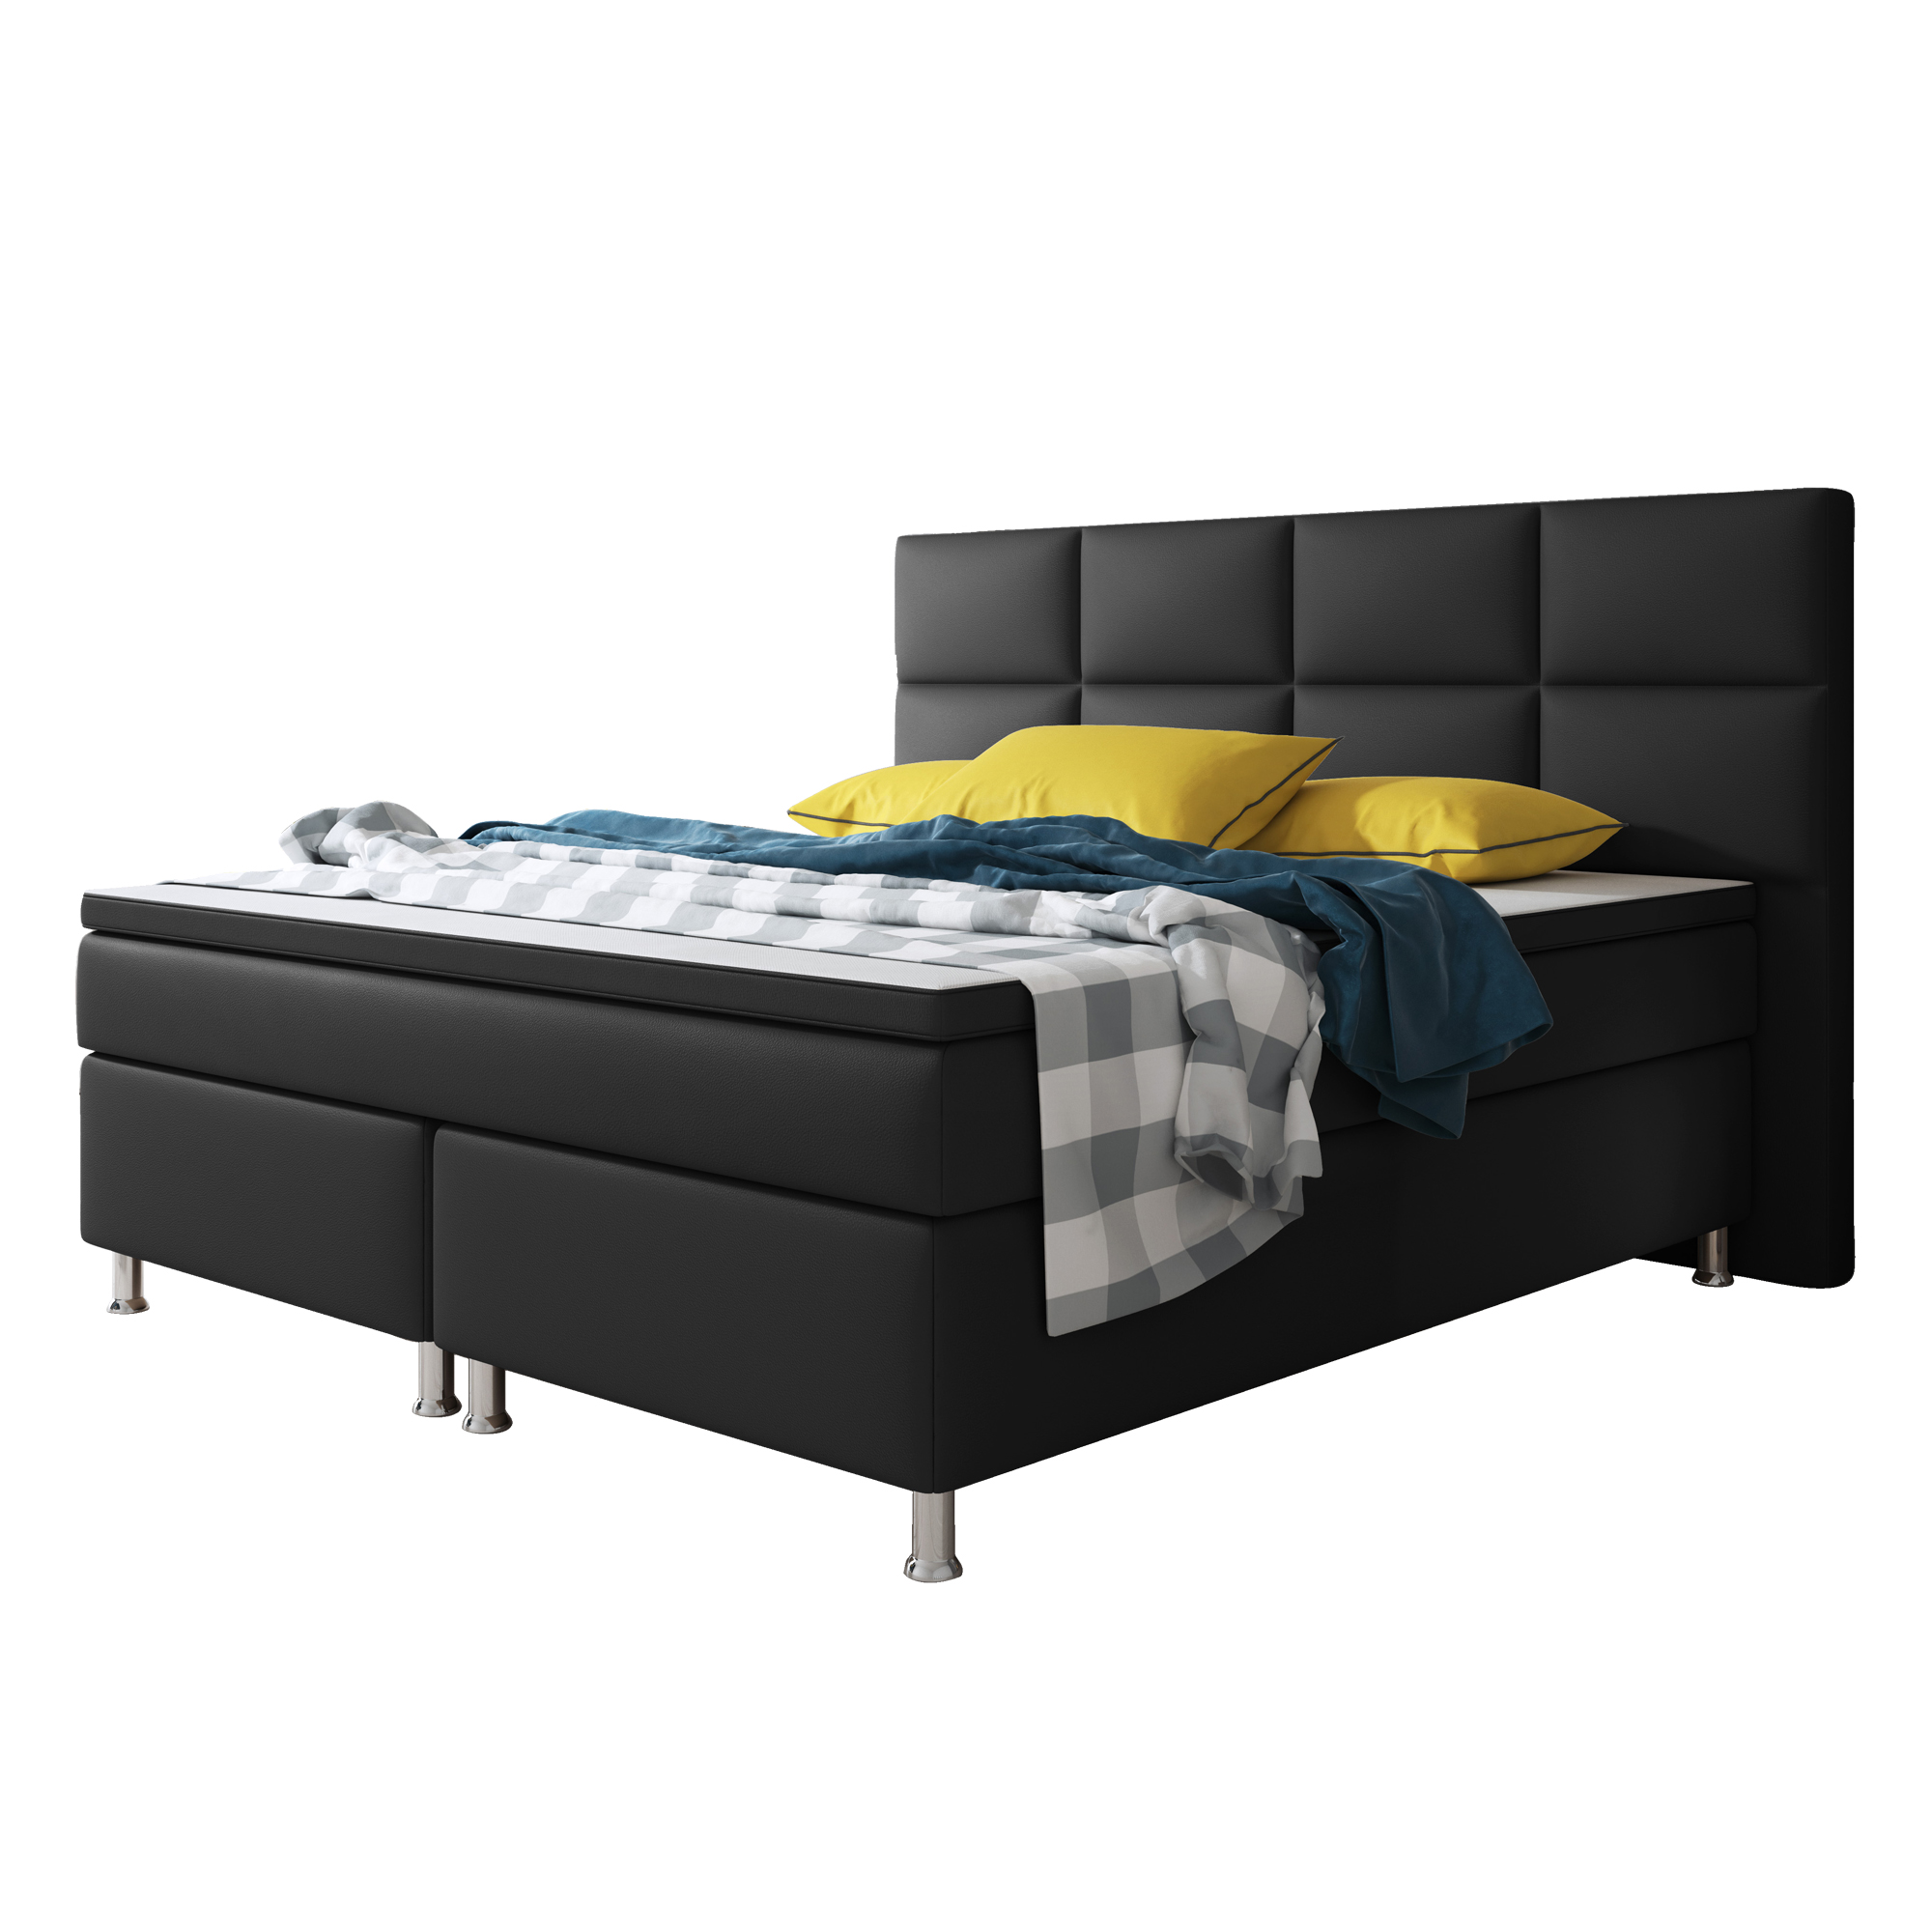 boxspringbett miami mit bettkasten 180x200 cm kunstleder schwarz schlafen boxspringbetten. Black Bedroom Furniture Sets. Home Design Ideas